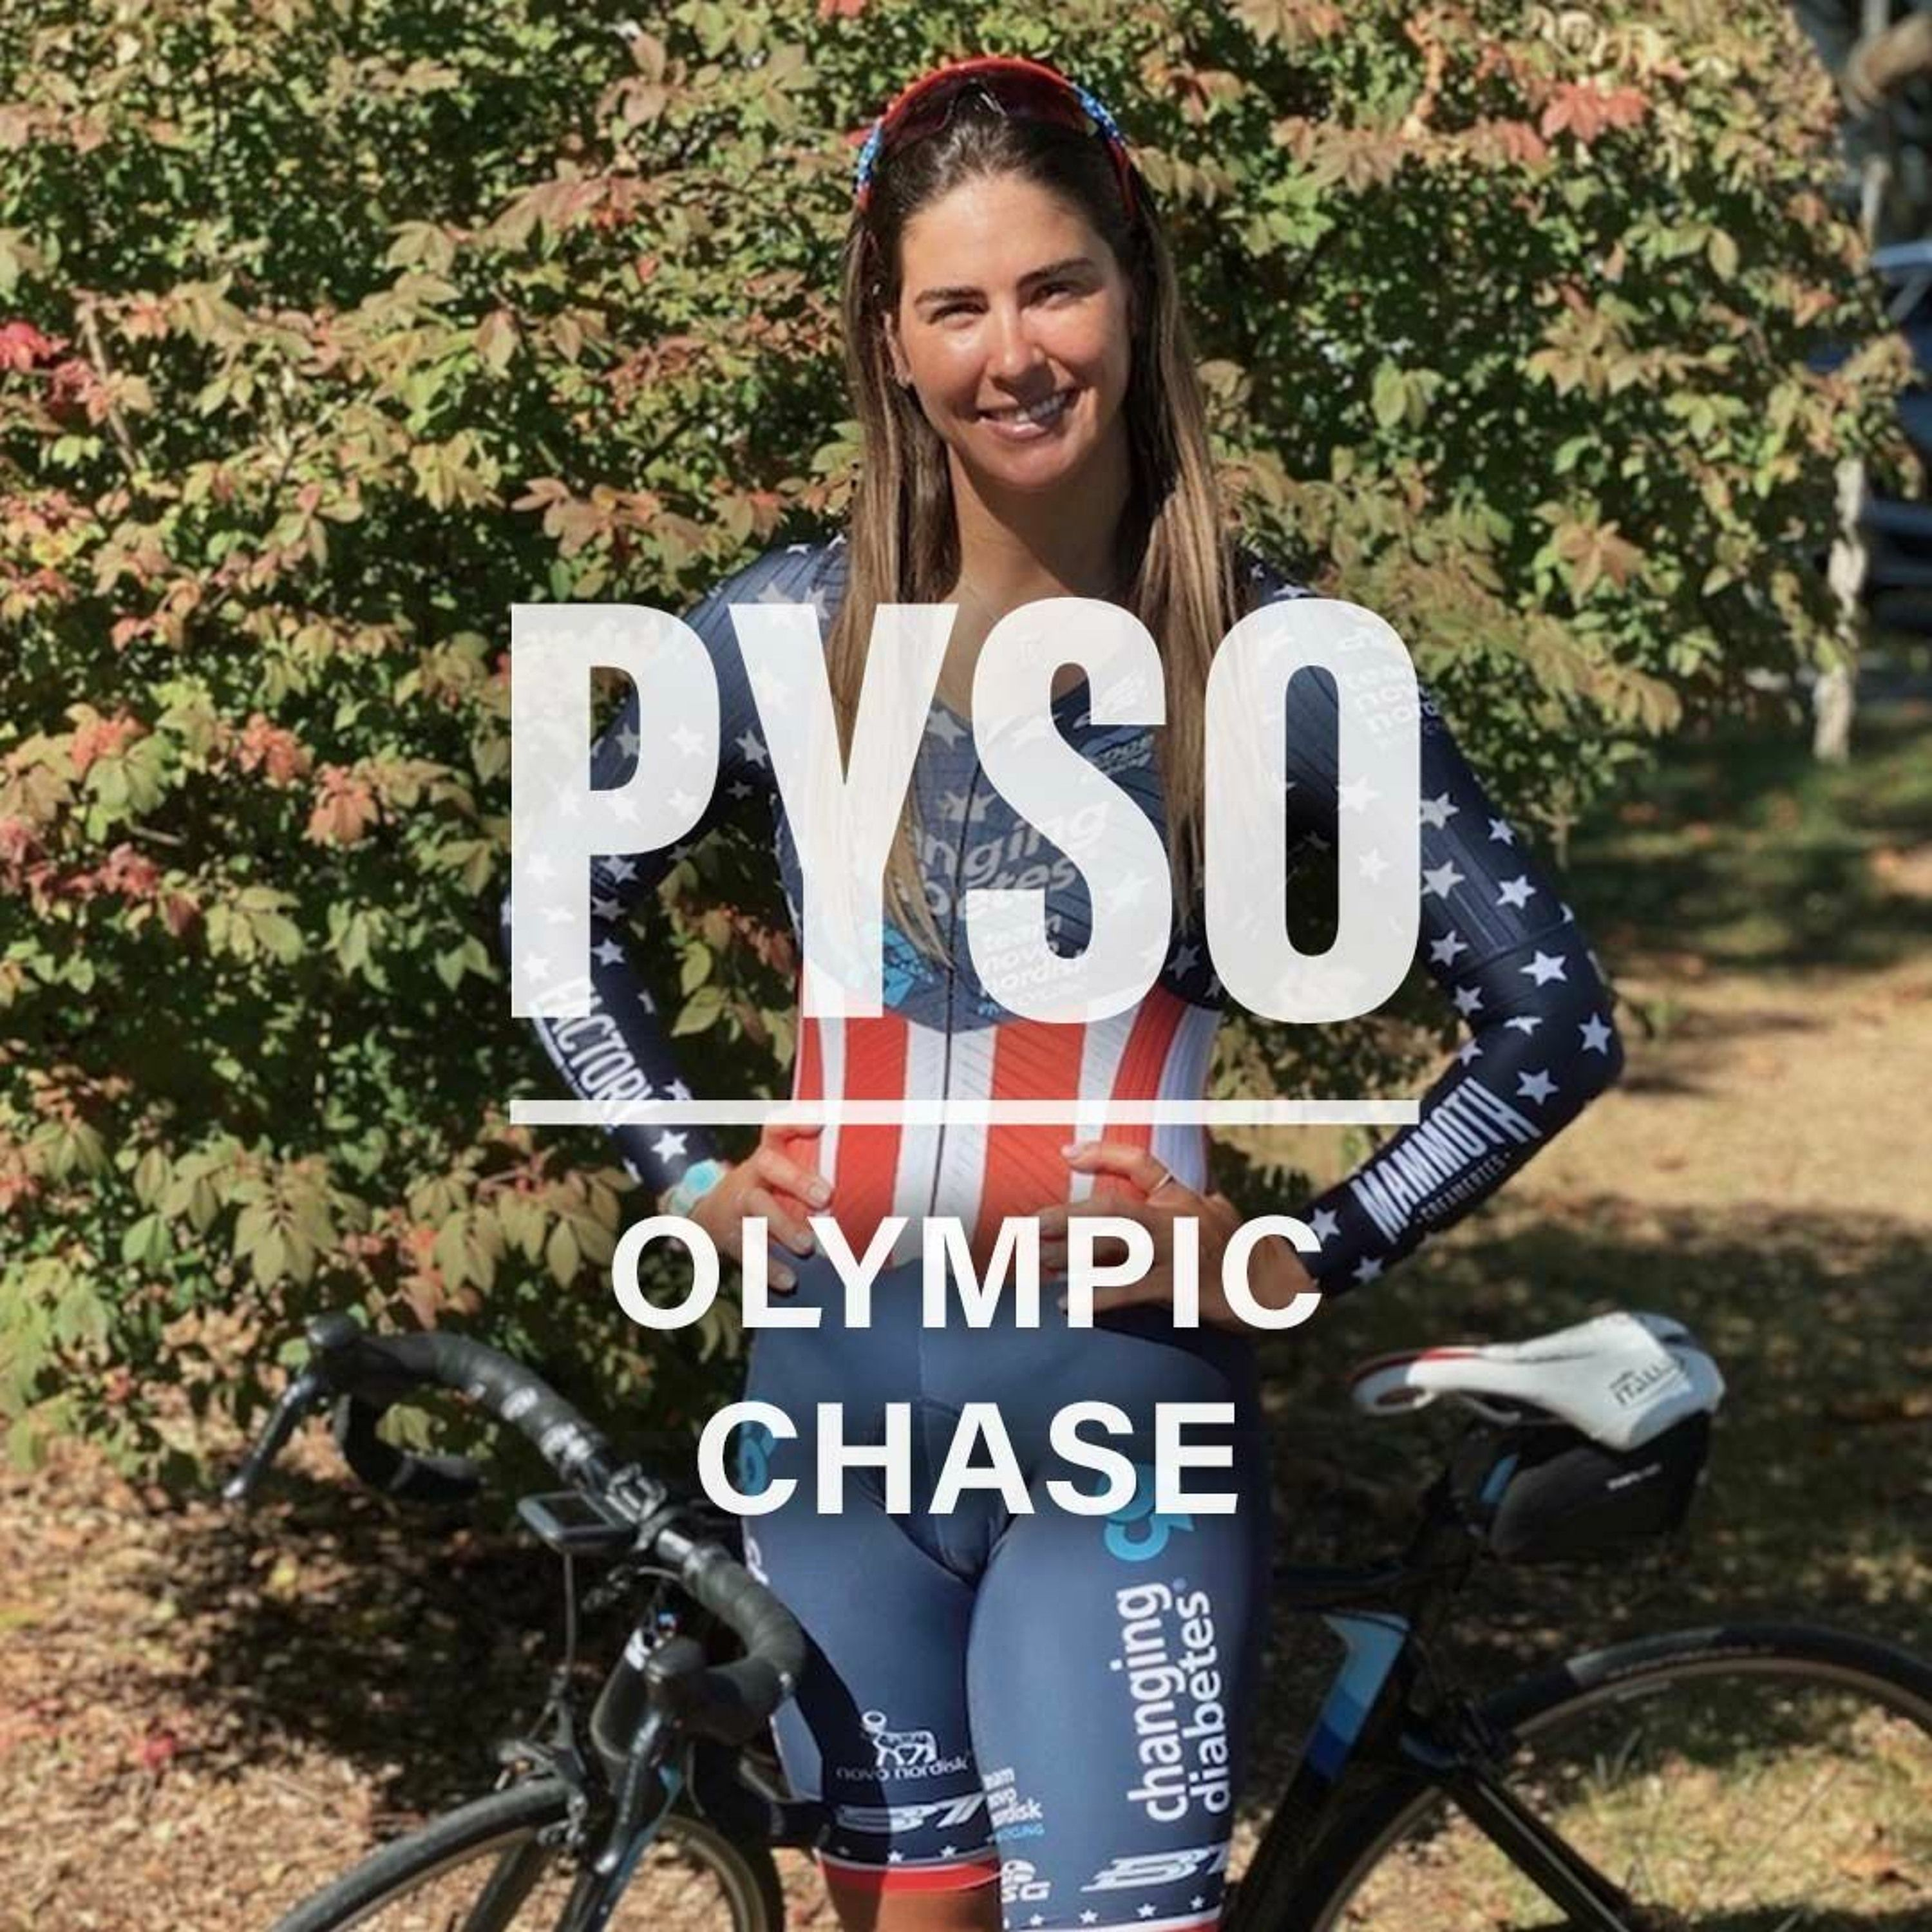 PYSO, ep. 77: Olympic long team member Mandy Marquardt has 18 national titles — and diabetes